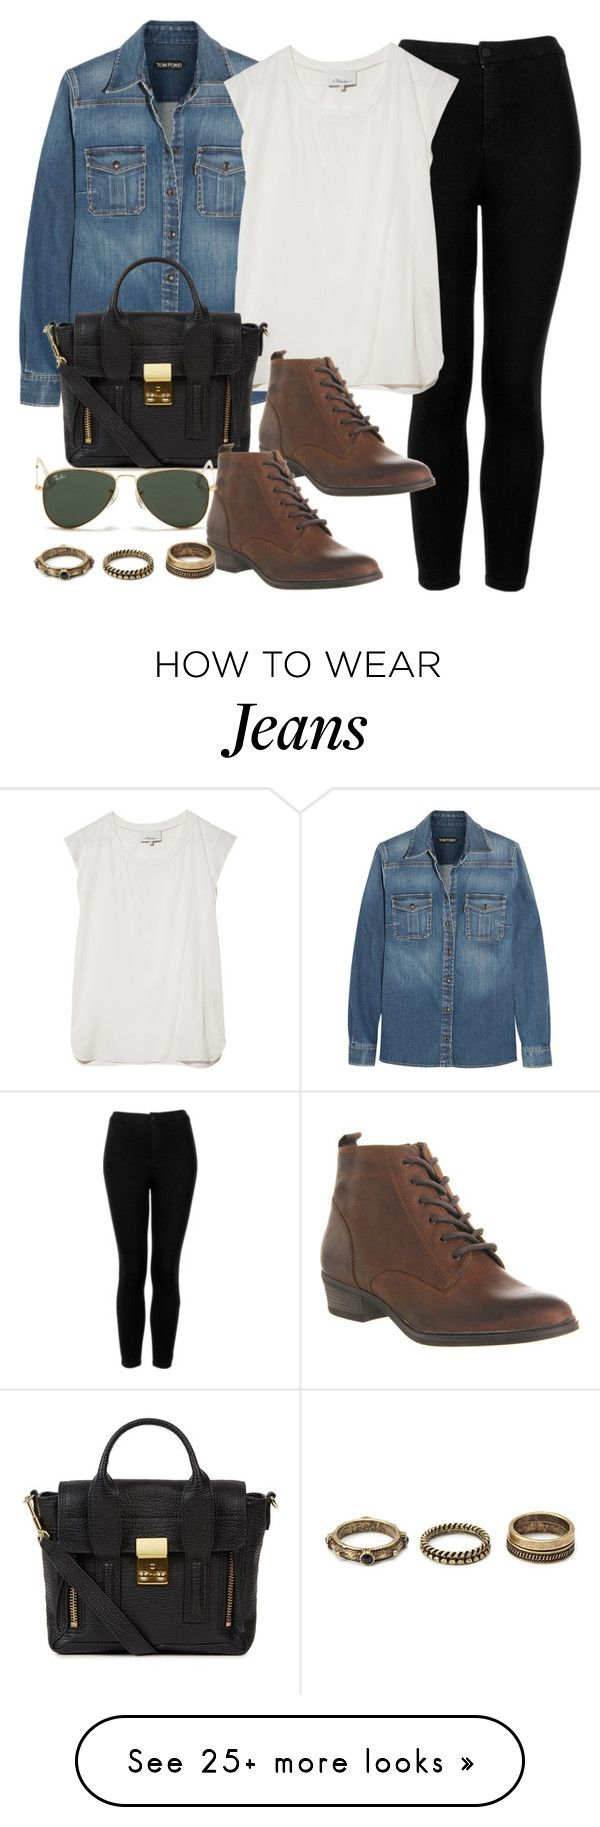 """Style #9434"" by vany-alvarado on Polyvore featuring Tom Ford, Topshop, 3.1 Phillip Lim, Office, Ray-Ban and Forever 21"